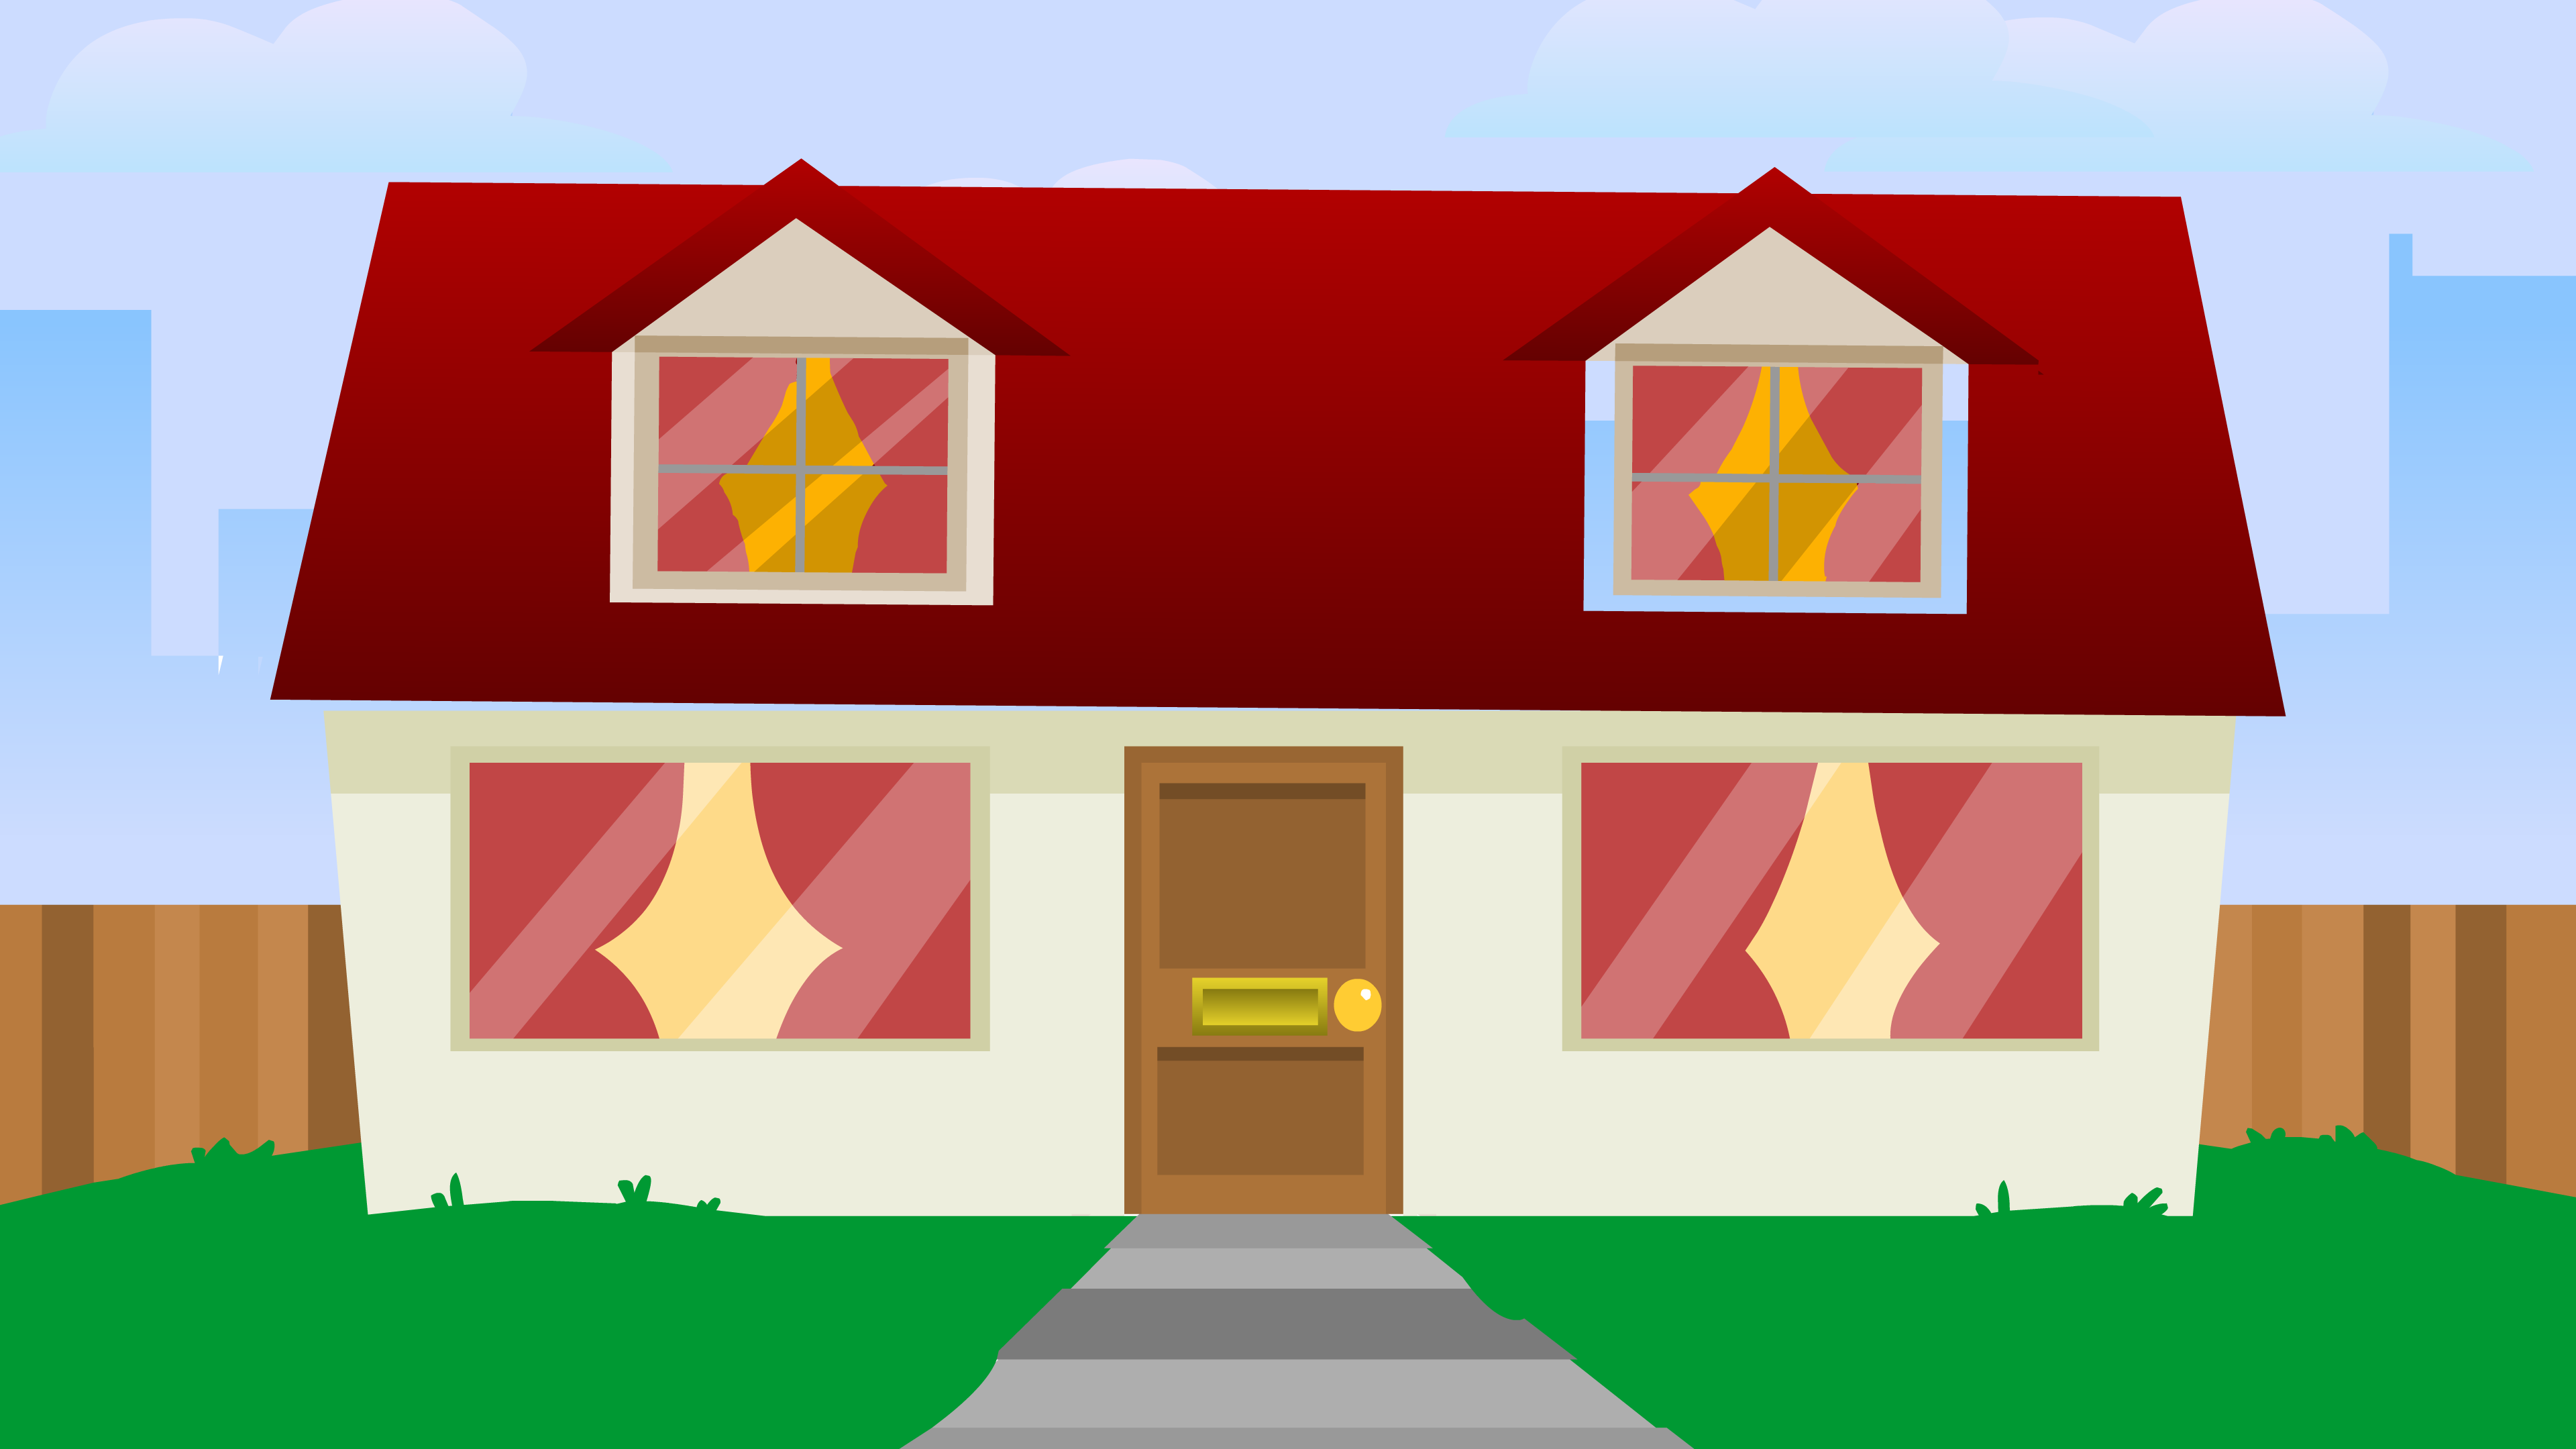 Edds house eddsworld wiki fandom powered by wikia edds house malvernweather Image collections